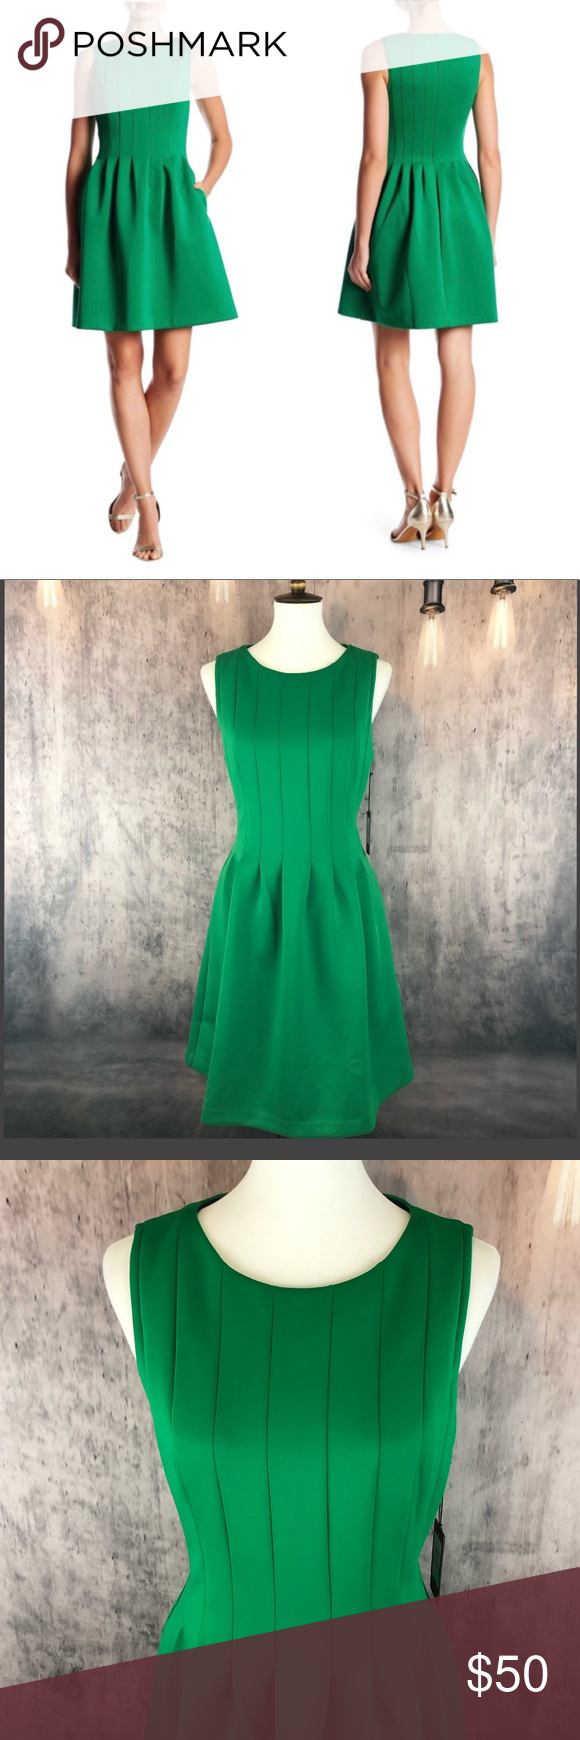 Vince Camuto Scuba Green Fit Flare Dress 12 Fit Flare Dress Flare Dress Fit And Flare Dress [ 1740 x 580 Pixel ]